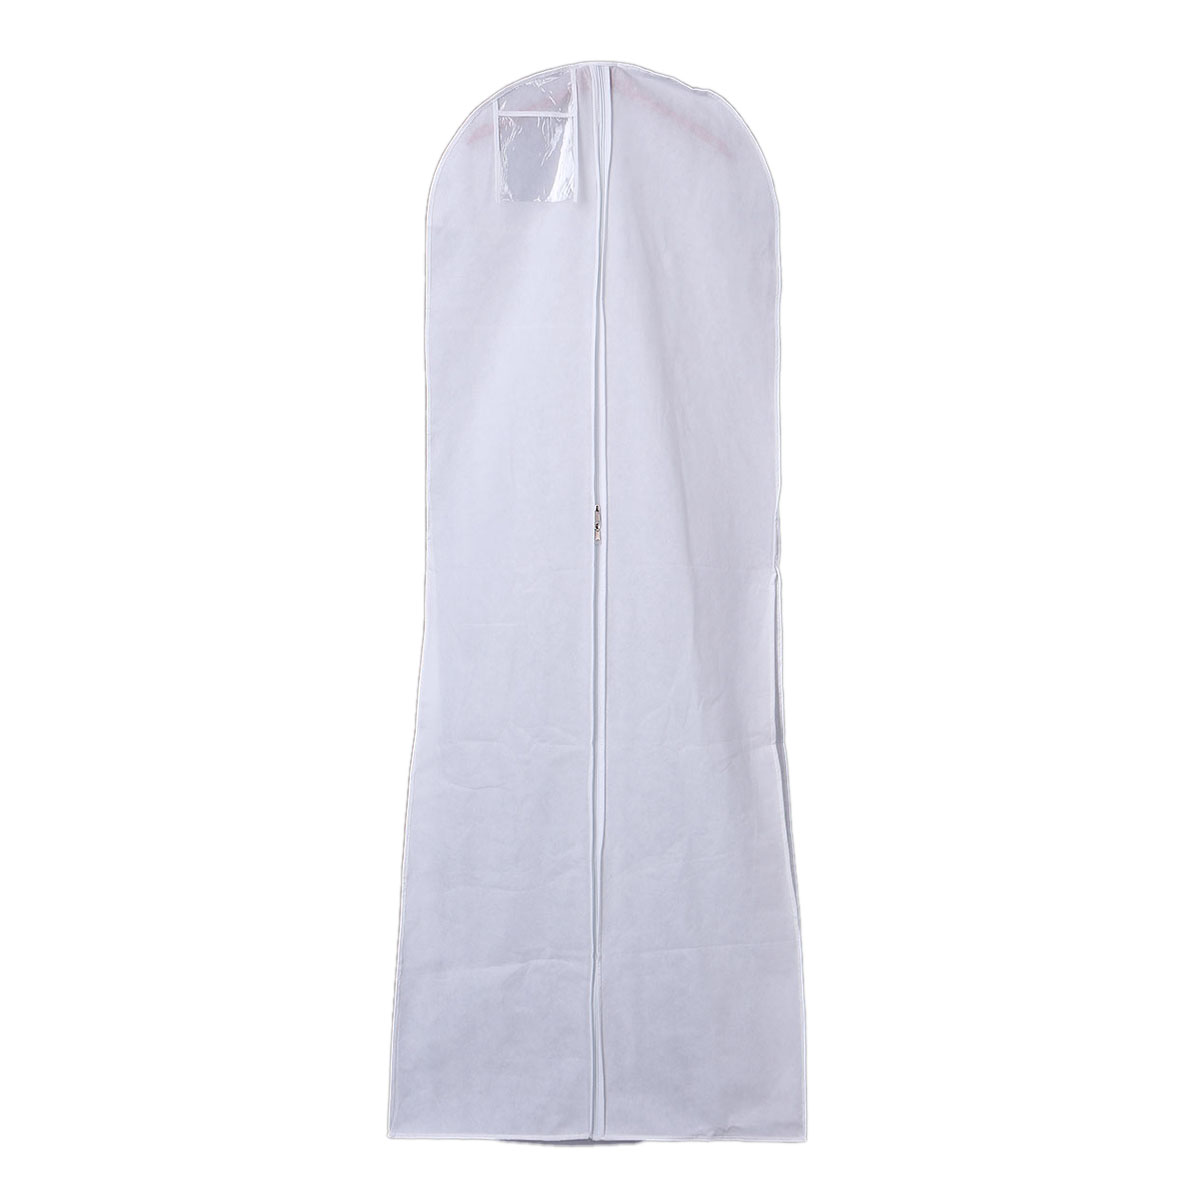 Hanging Wedding Dress Bridal Gown Garment Cover Storage Bag Carry Zip Dustproof White In Storage